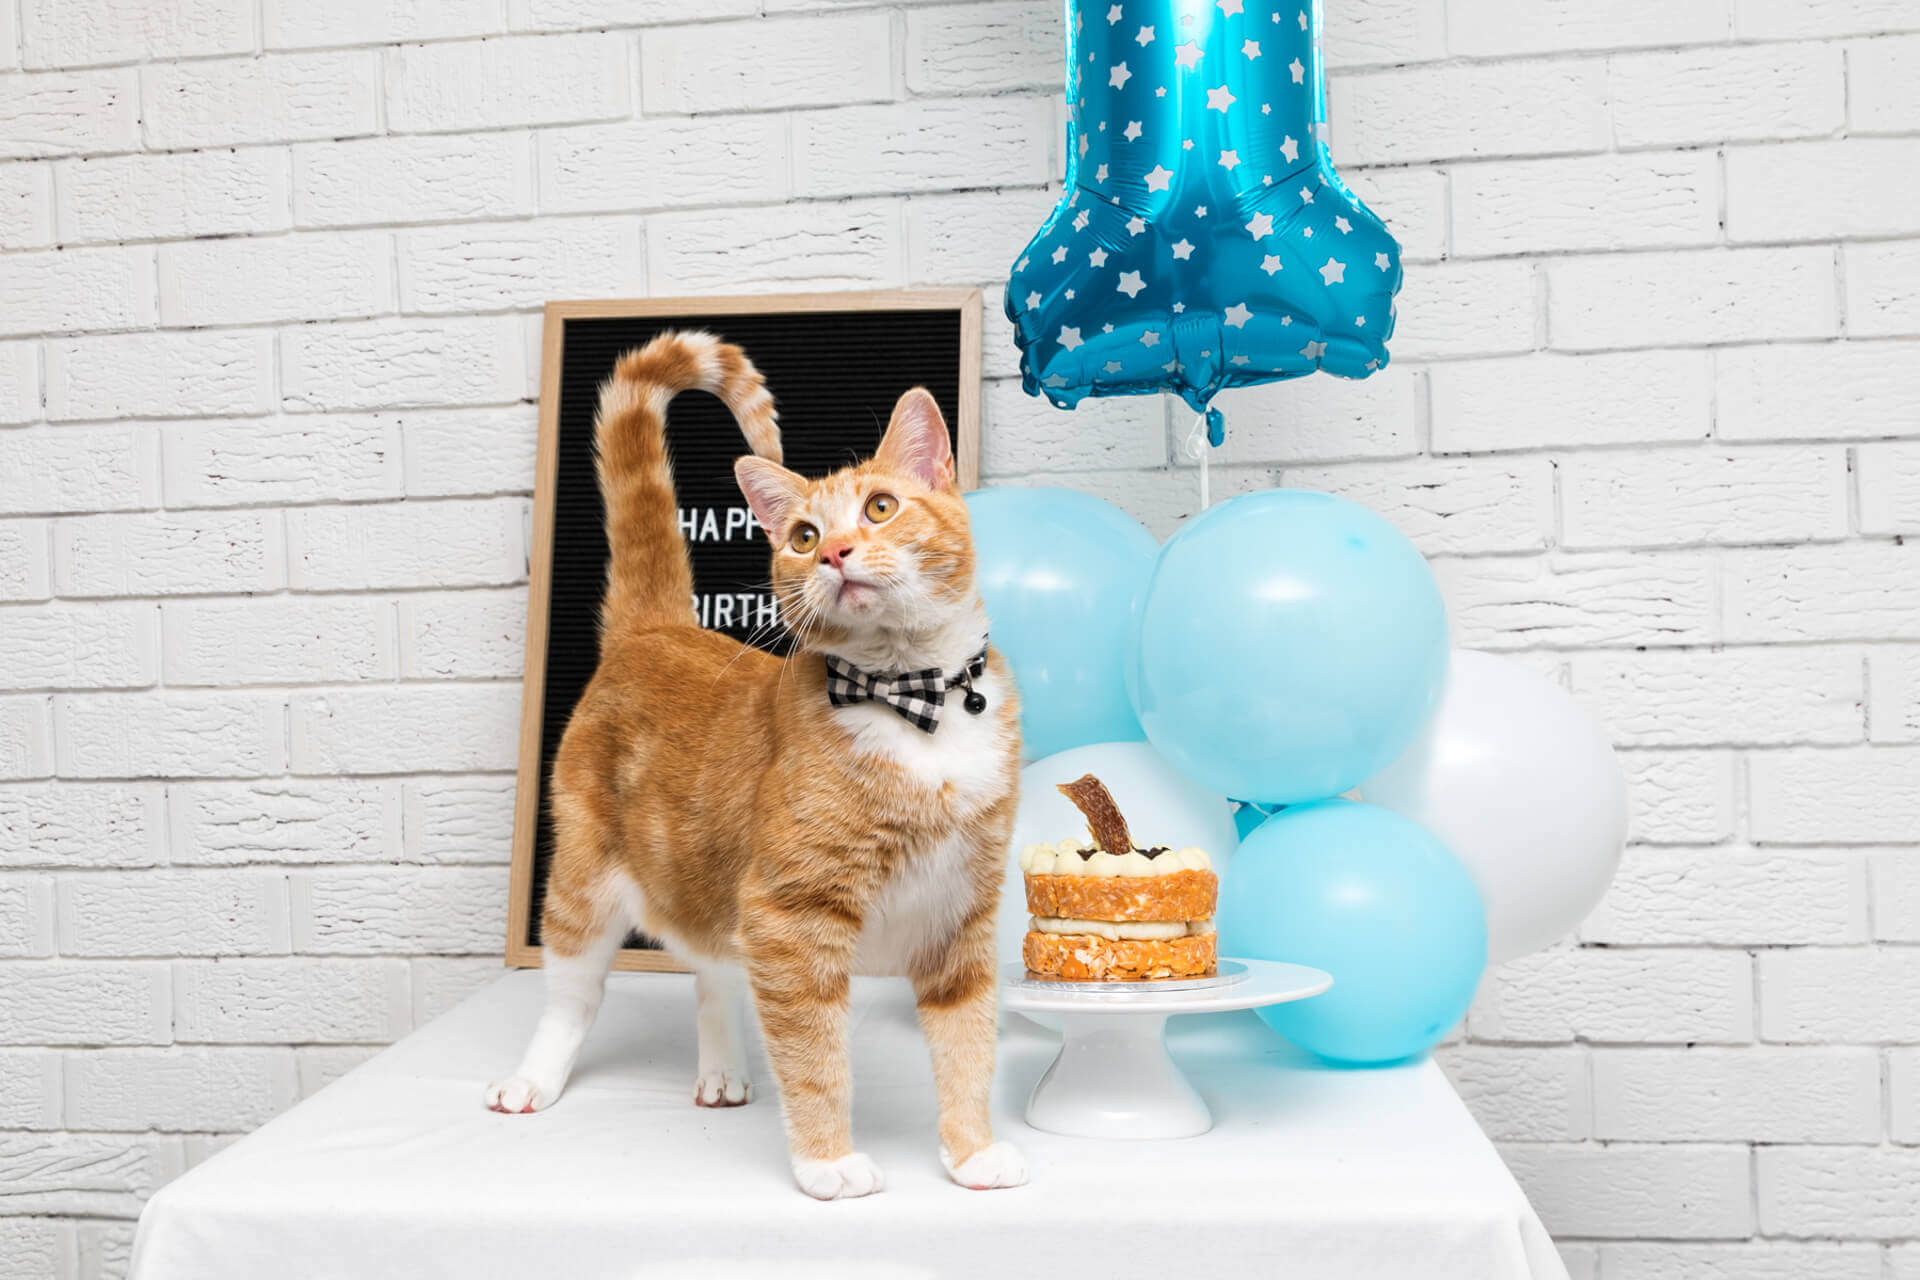 Lennon the ginger cat with birthday cake and baloon